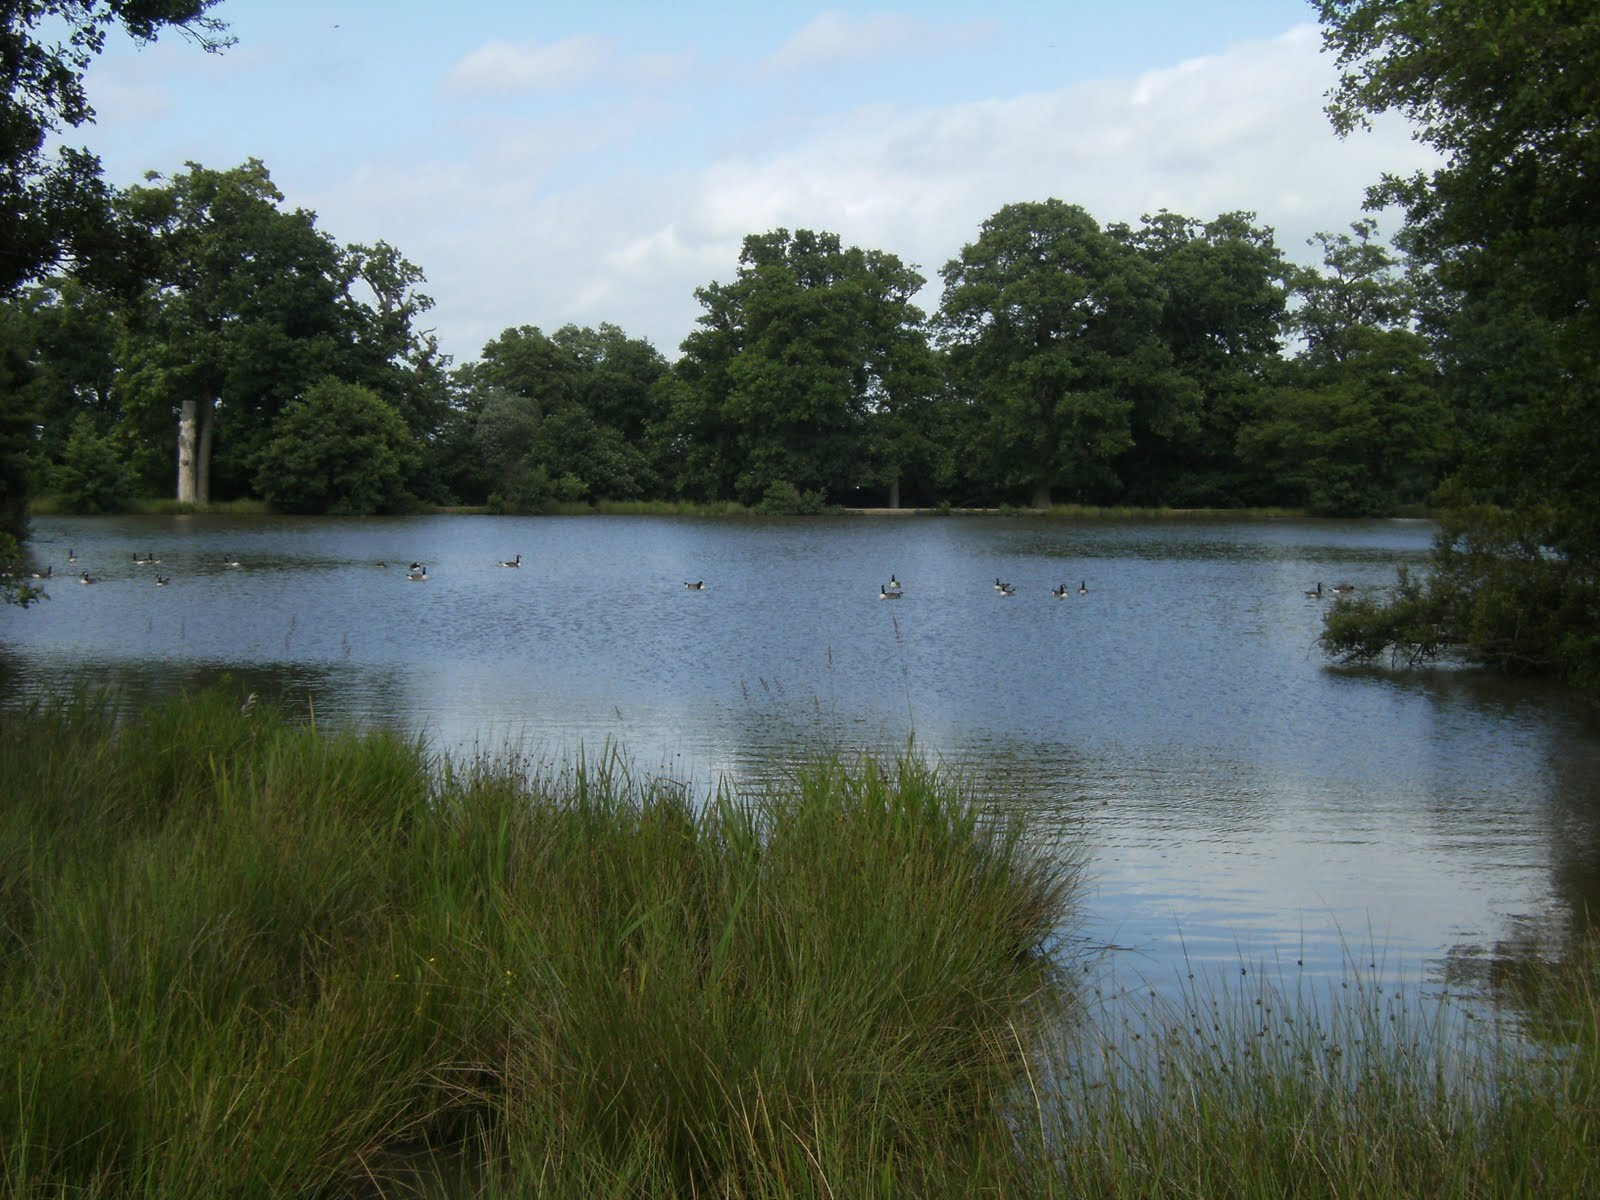 DSCF8695 Lower Pond, Petworth Park